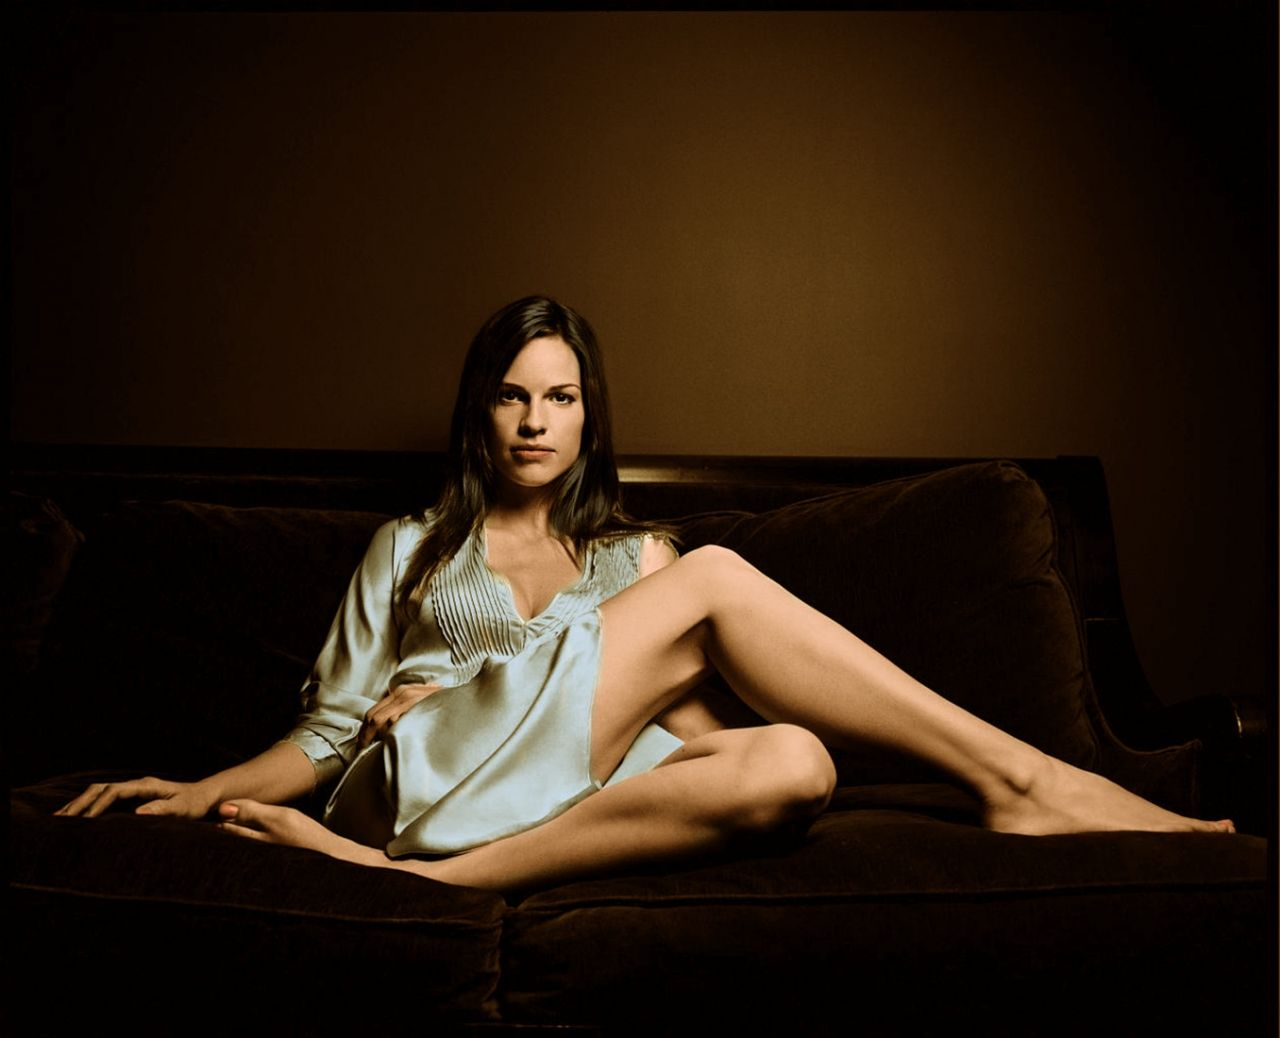 Hilary Swank Wallpapers (+3) - November 2014